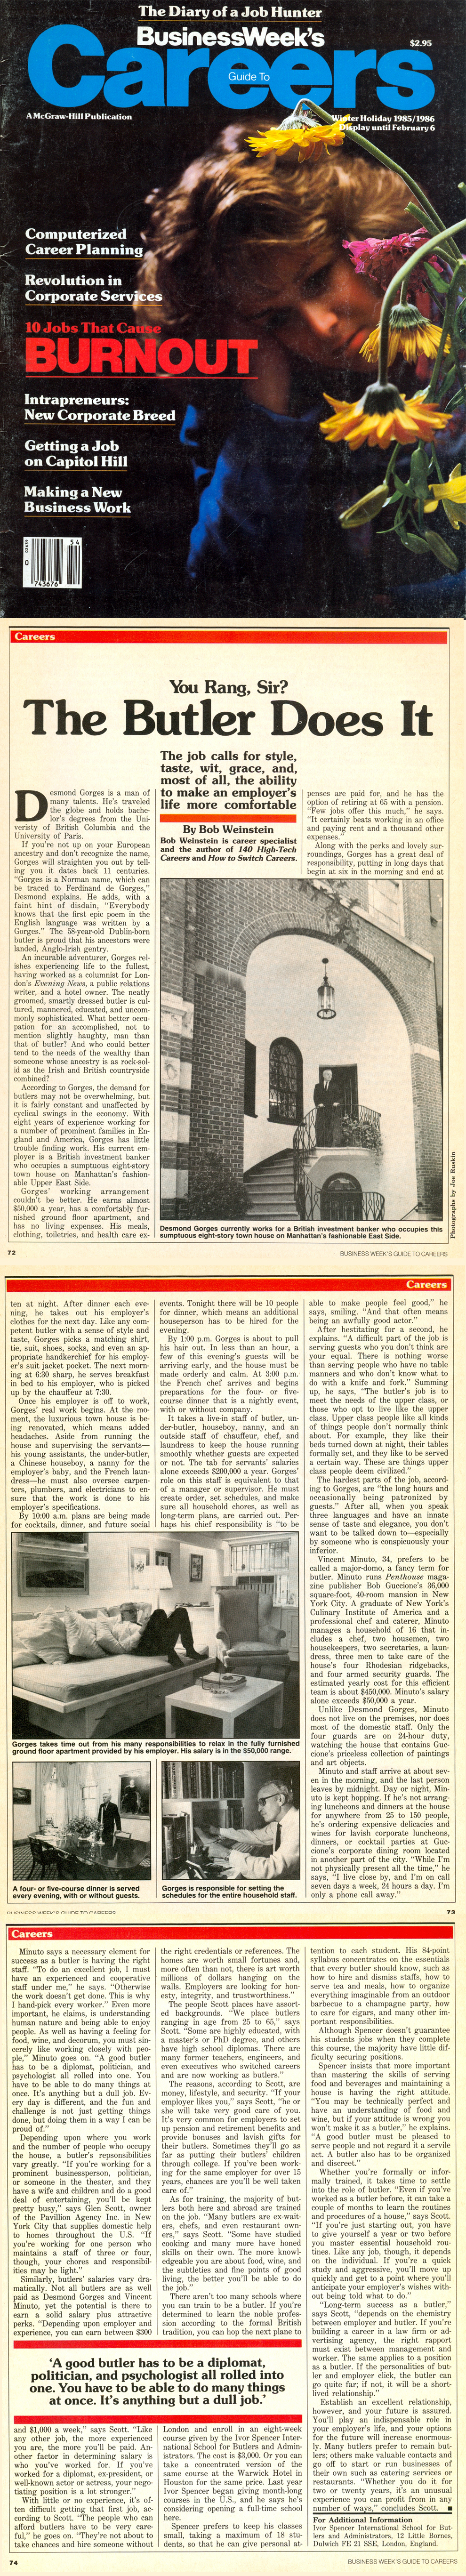 1986 Business Week Article